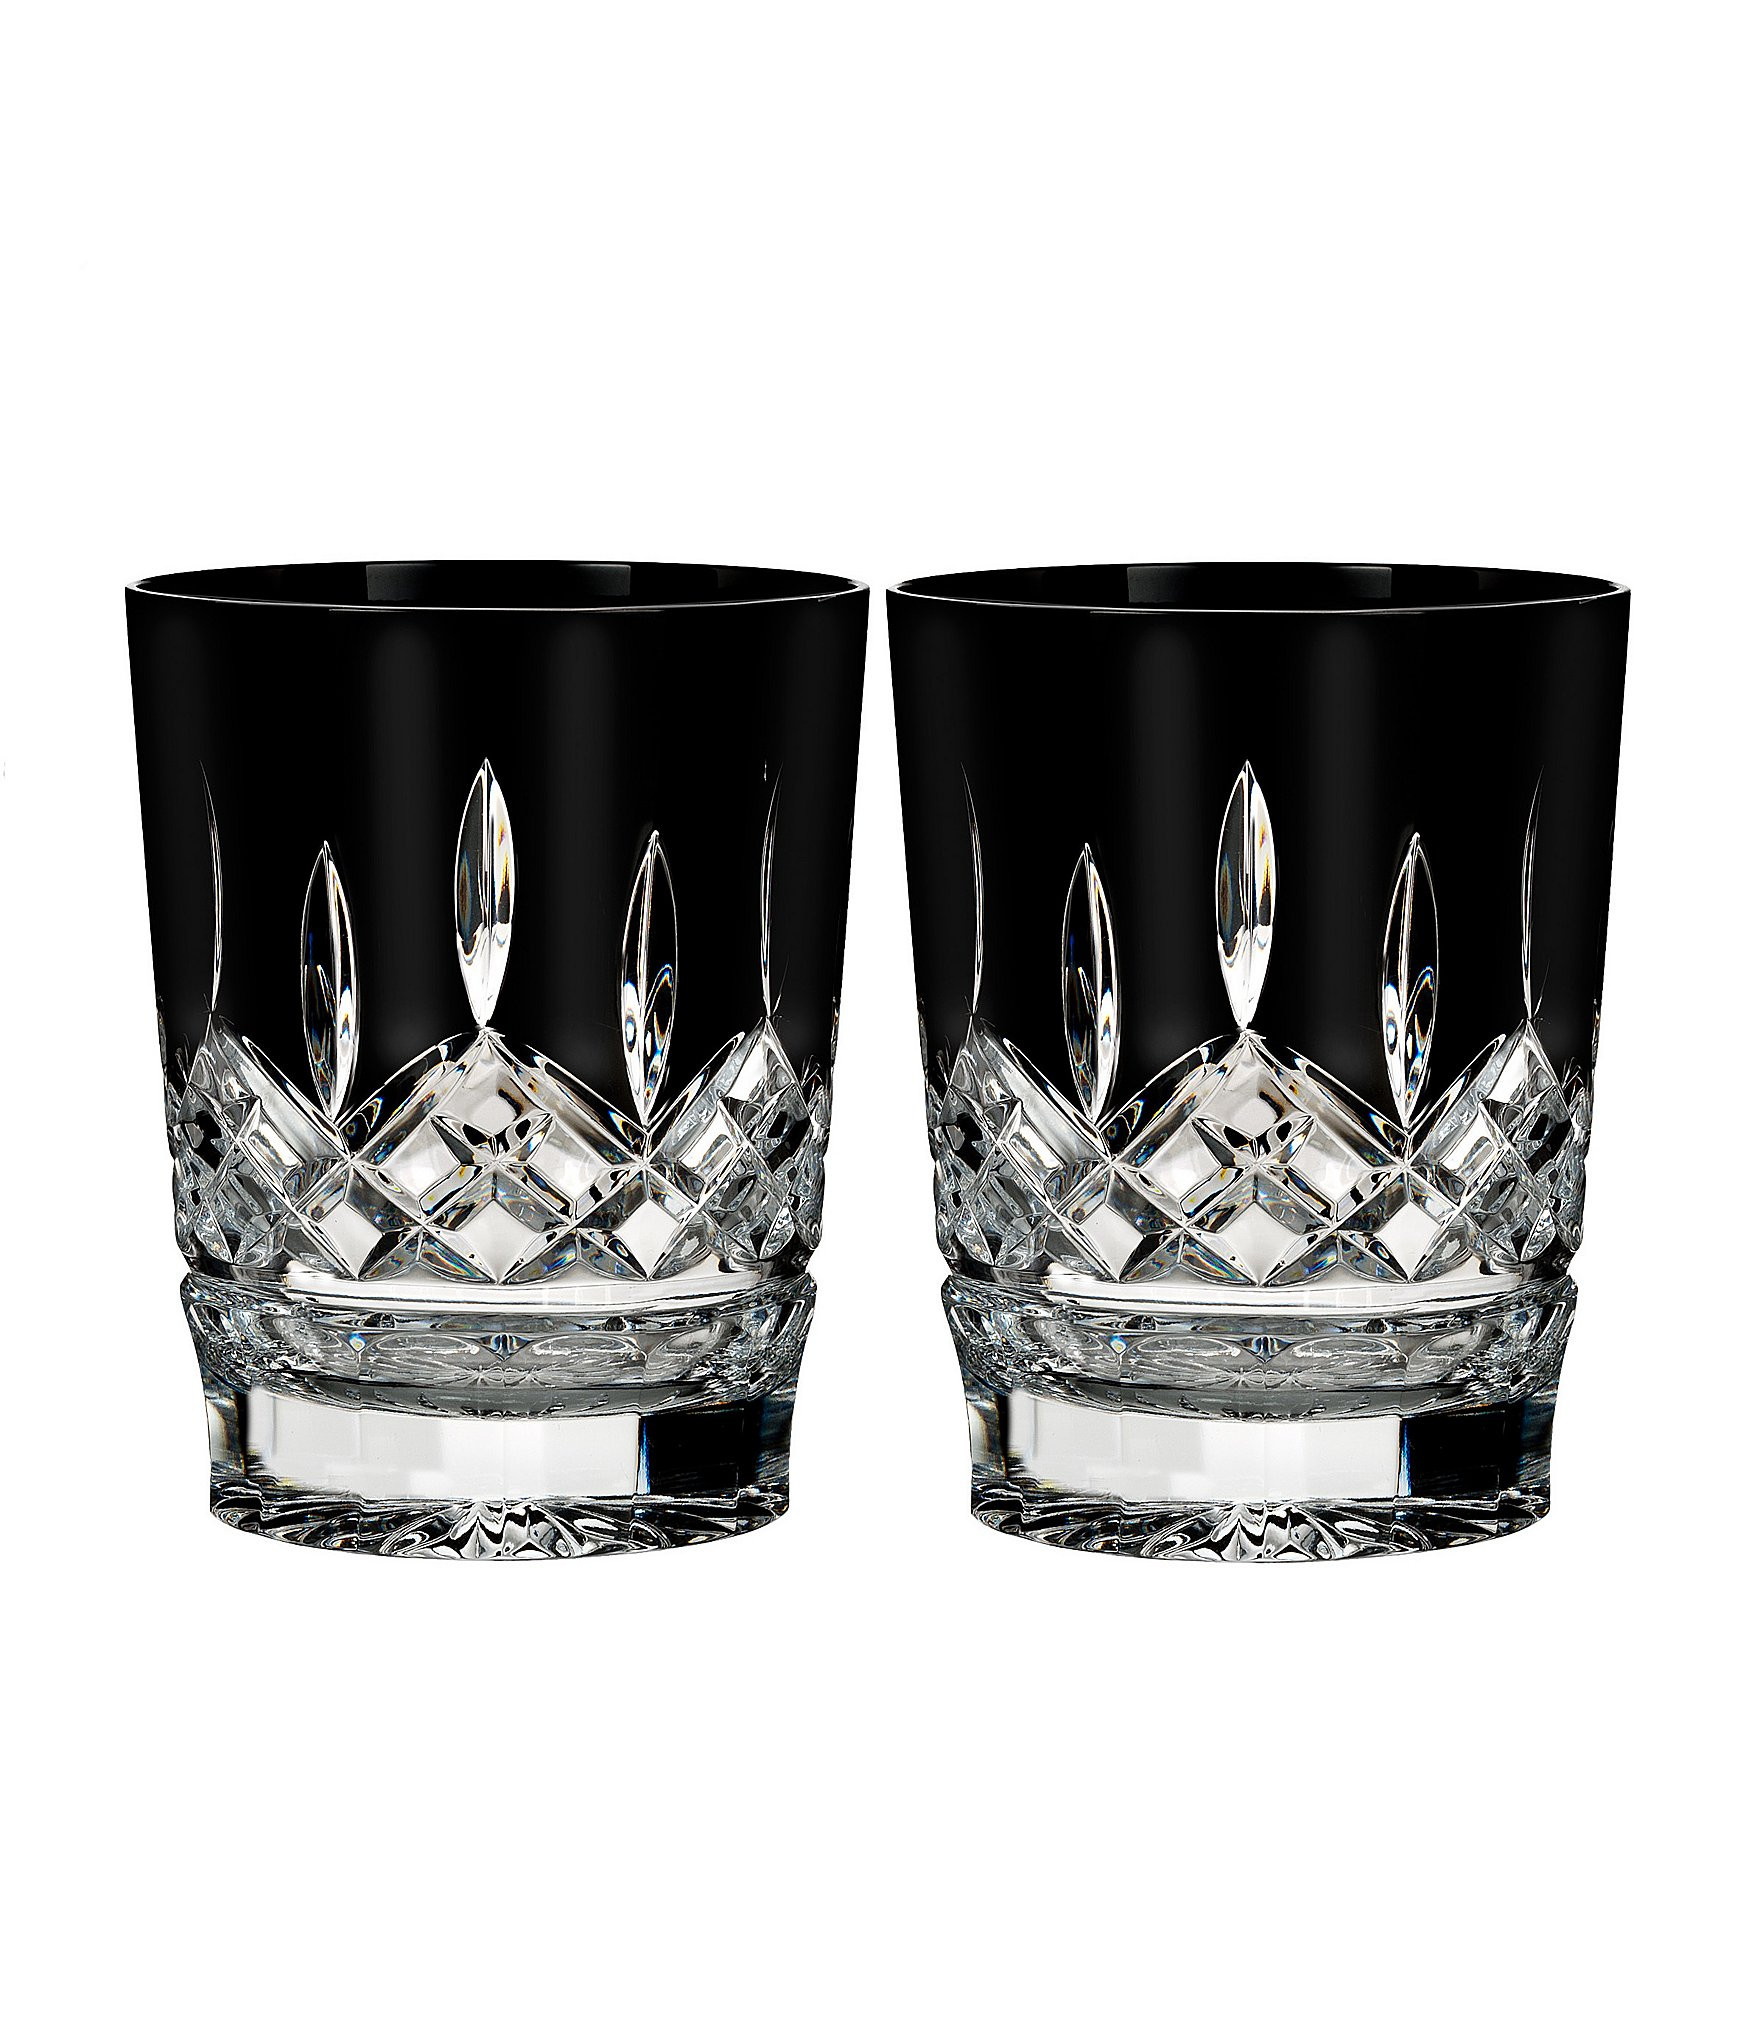 waterford giftology lismore candy bud vase of waterford crystal lismore home kitchen dining bedding dillards inside 04998418 zi black